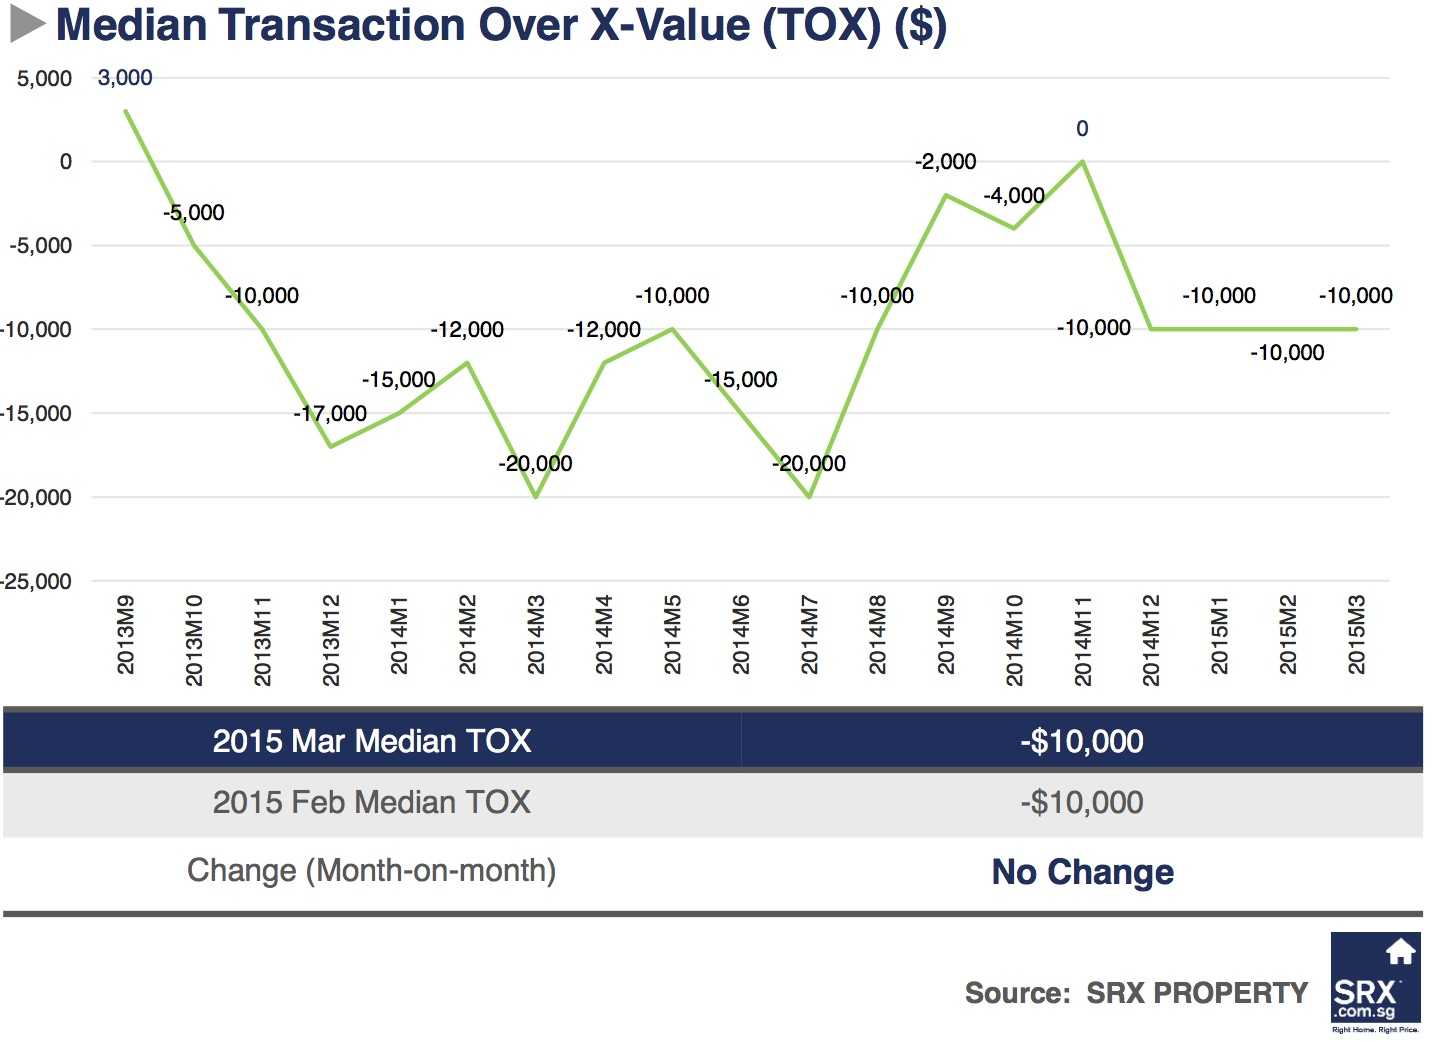 Singapore Price Index: Resale price dipped, volume up from February - Median Transaction Over X-Value